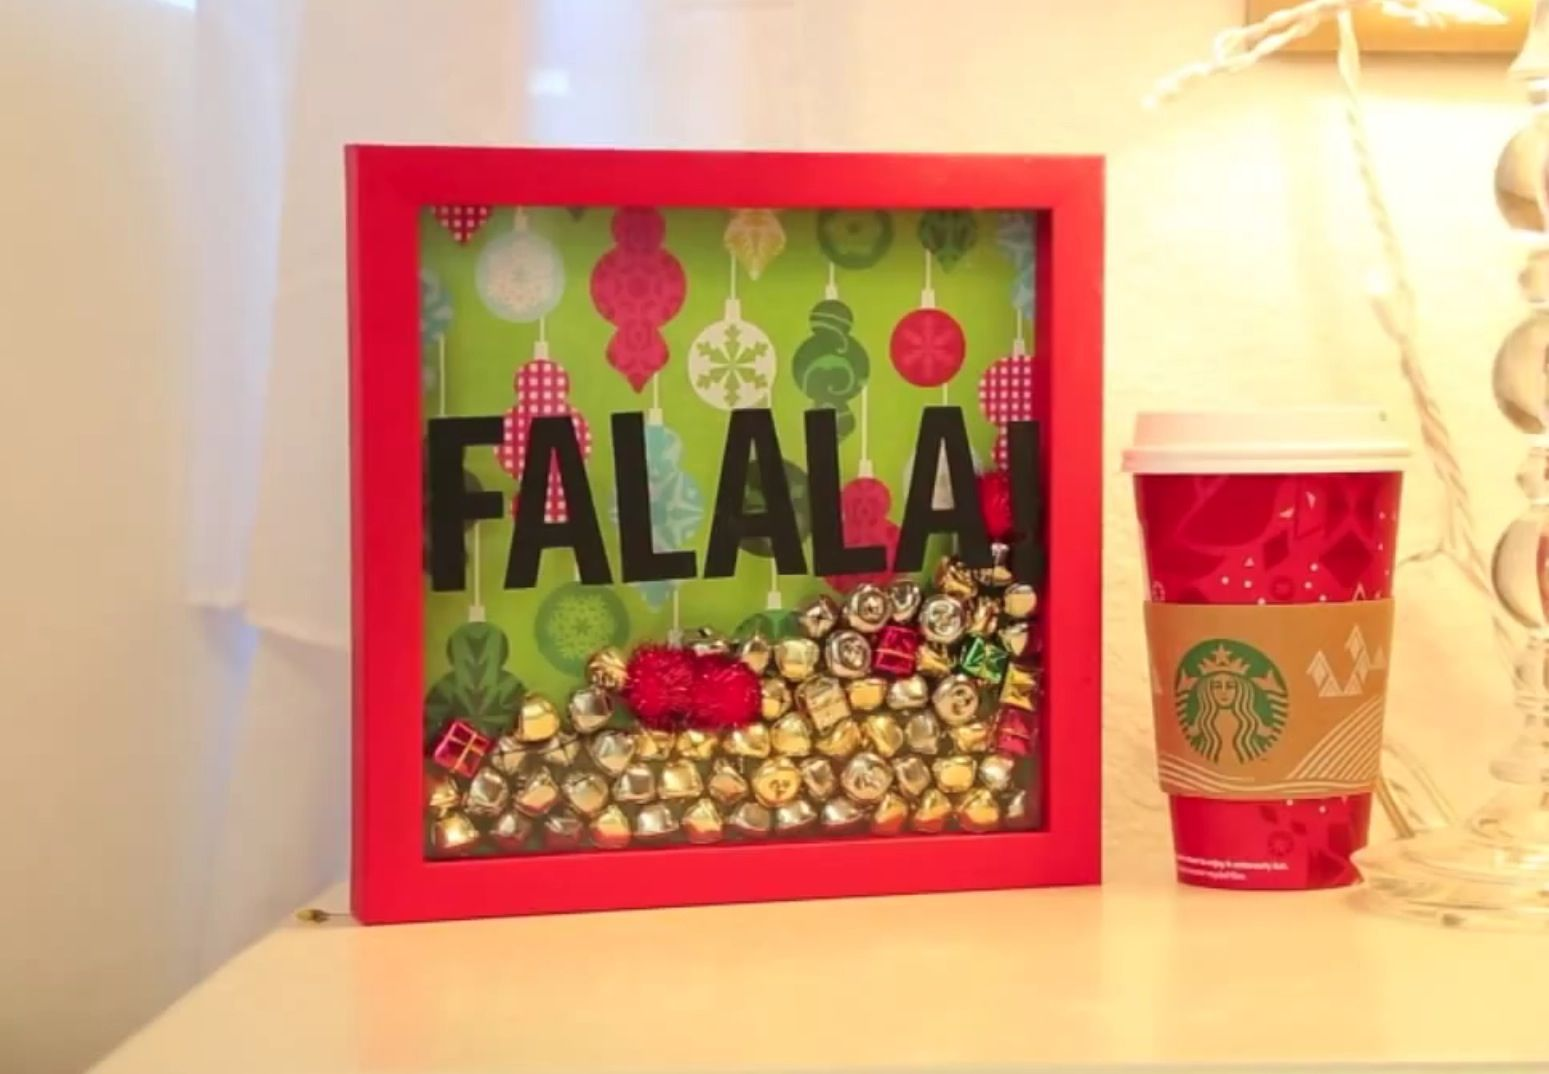 Tremendous Shadowbox From Bethany Motas Christmas Diy Room Decor Video Download Free Architecture Designs Scobabritishbridgeorg